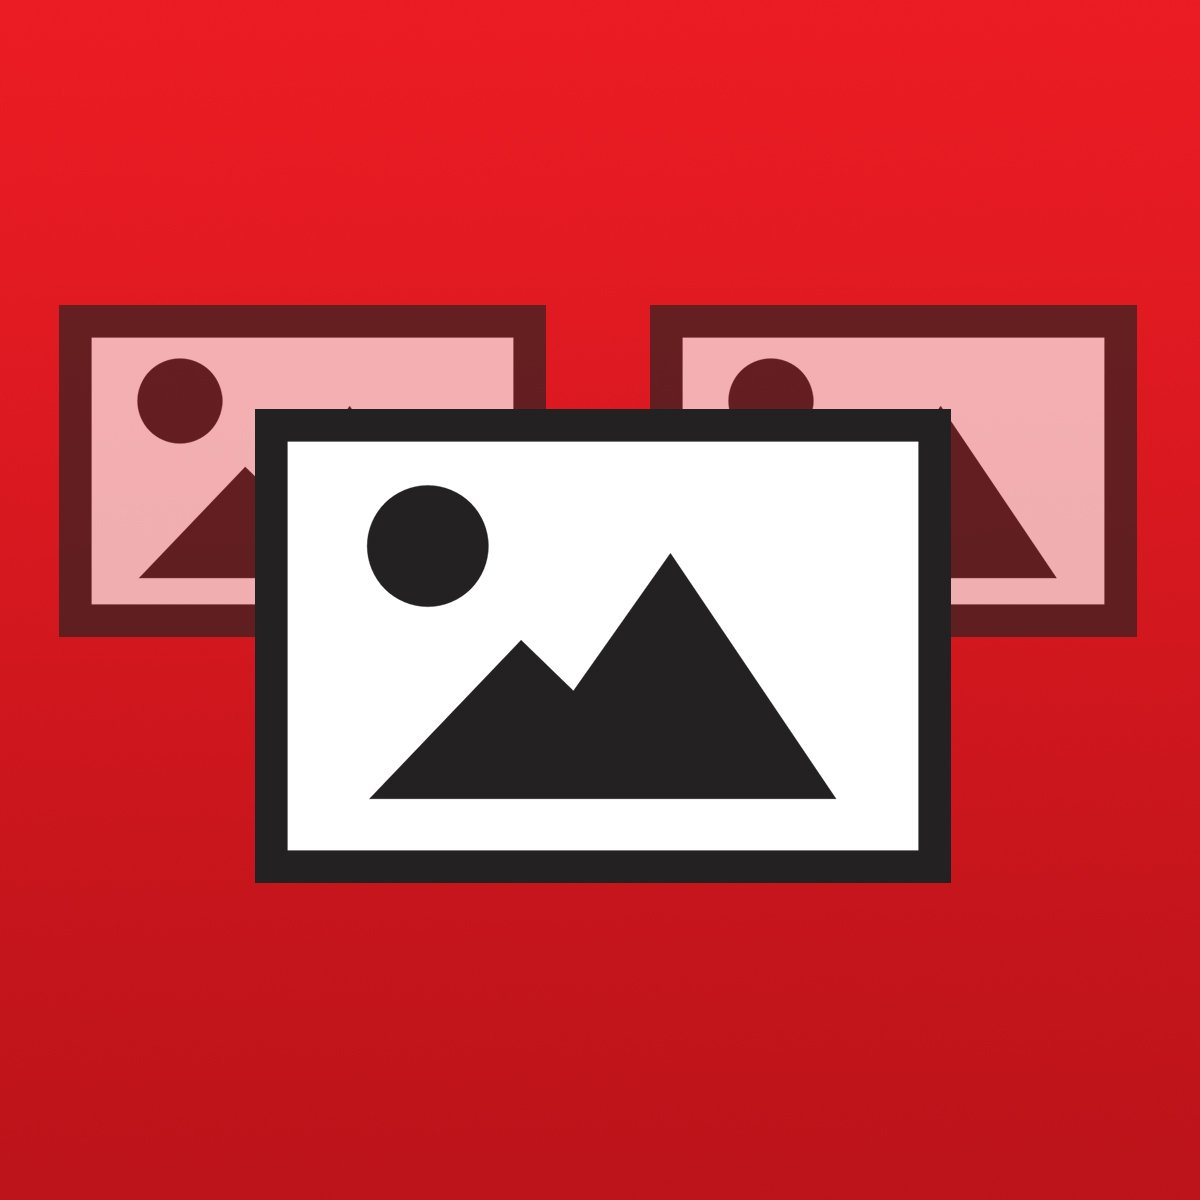 Shopify Product Image Resize Apps by Gravity software